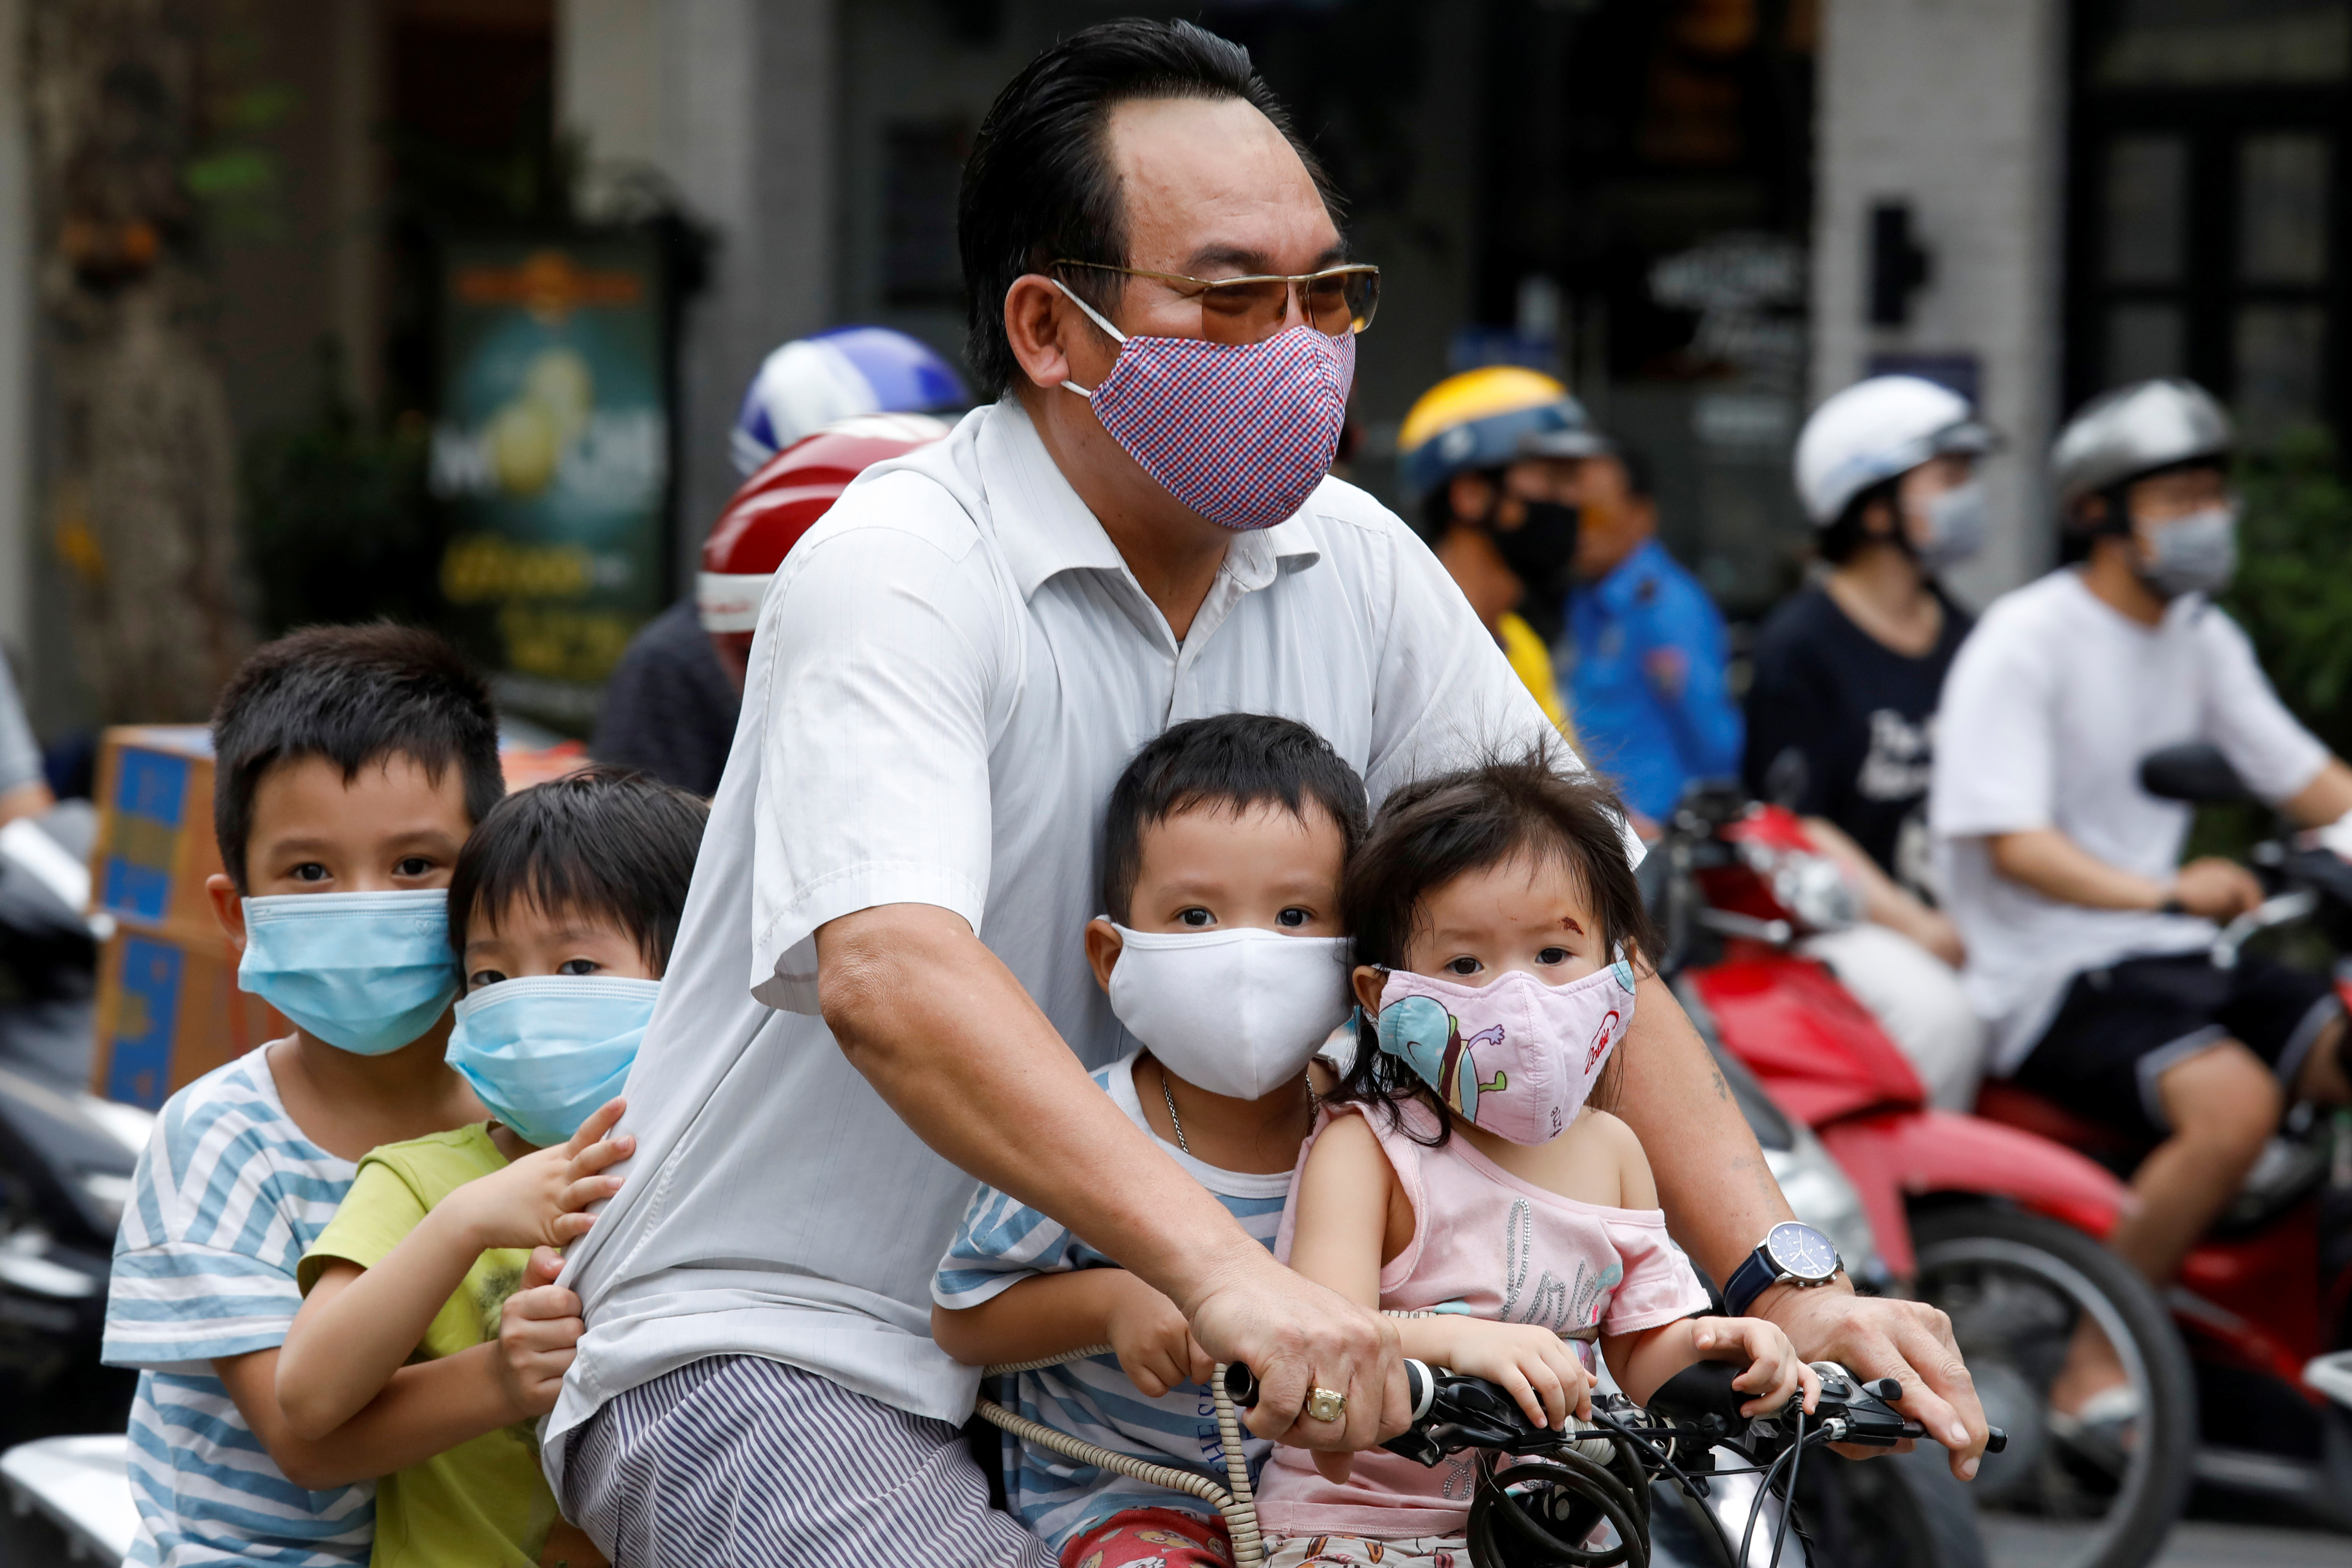 A man and his children, all wearing protective masks, ride a bicycle on a street during the coronavirus disease (COVID-19) outbreak, in Hanoi, Vietnam July 27, 2020.